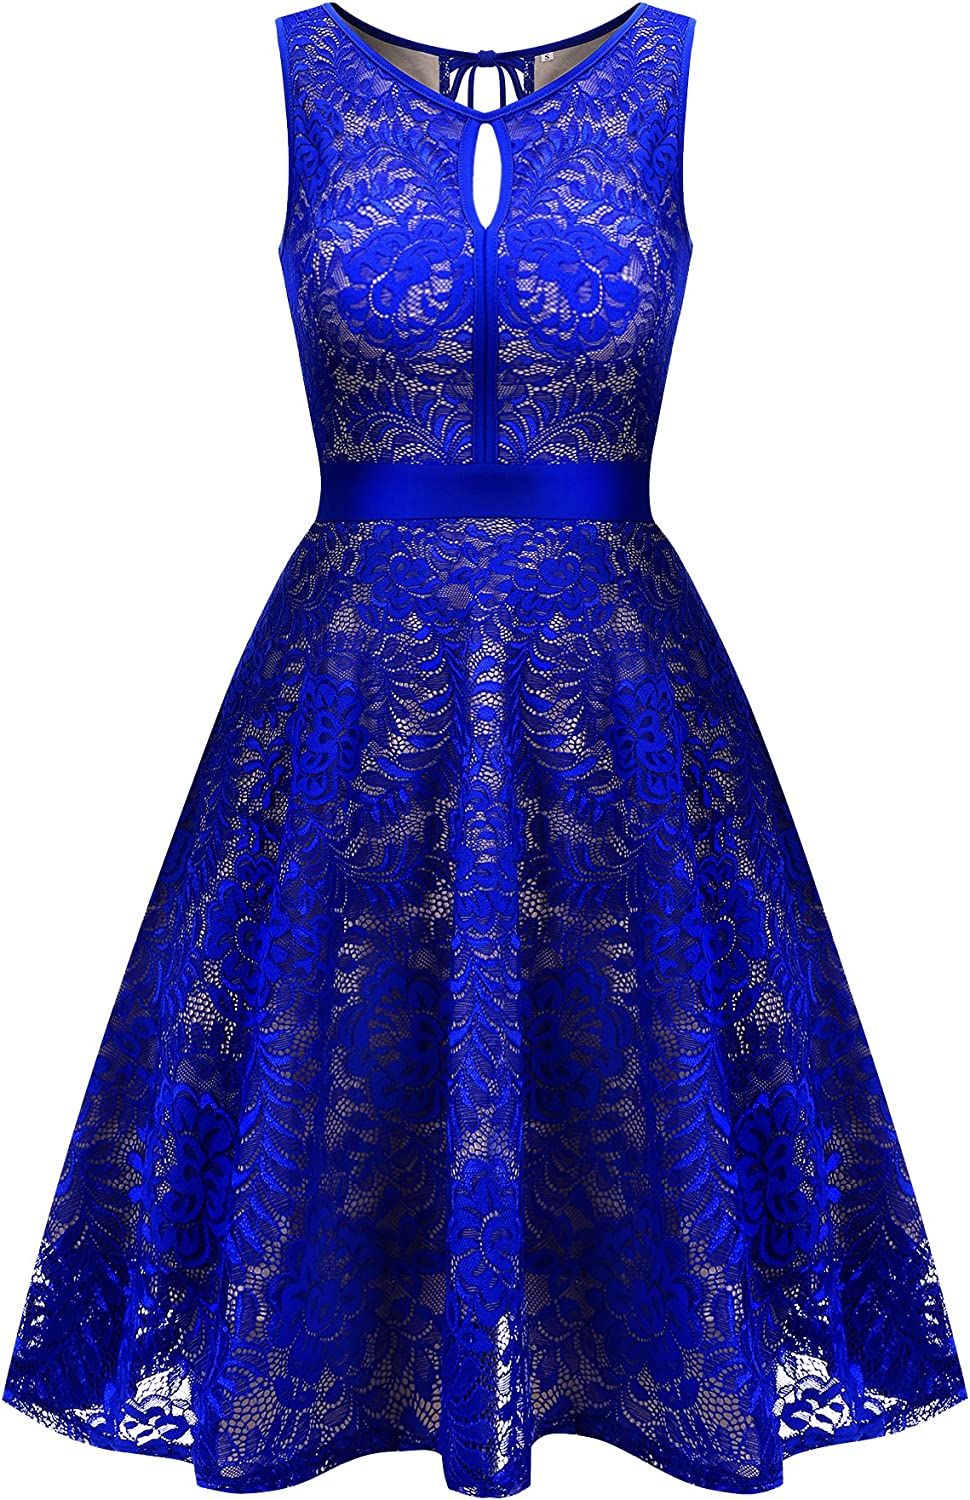 Uniboutique Women's Floral Lace Sleeveless Elastic Waist Pleated Swing Party Dress